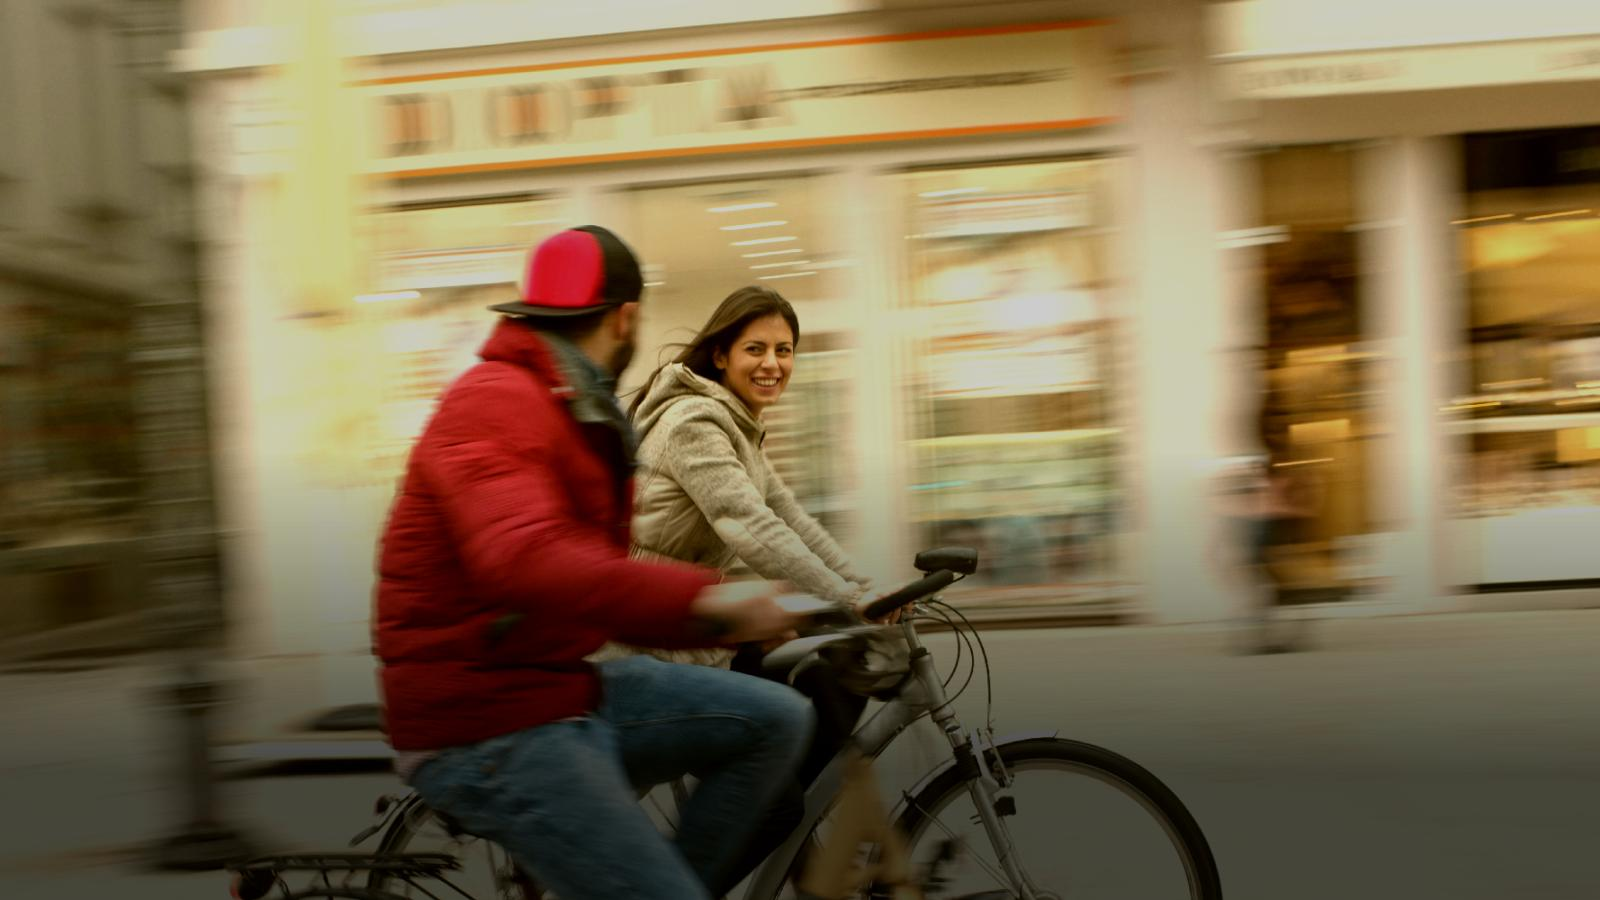 couple cycling